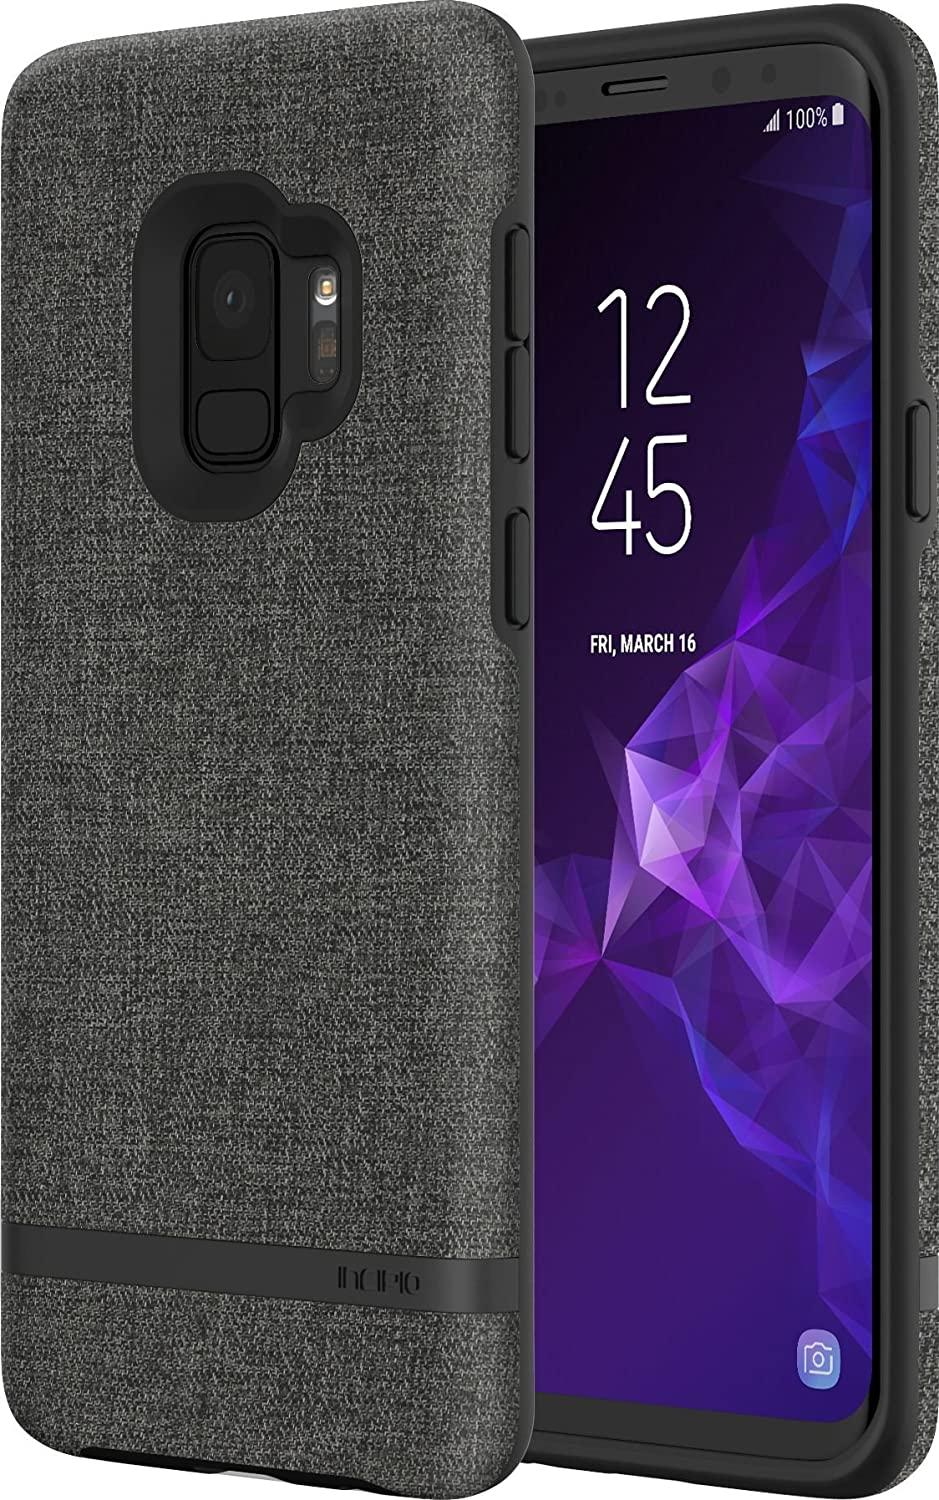 Incipio Carnaby Fabric Soft Cotton Texture Galaxy S9 Case